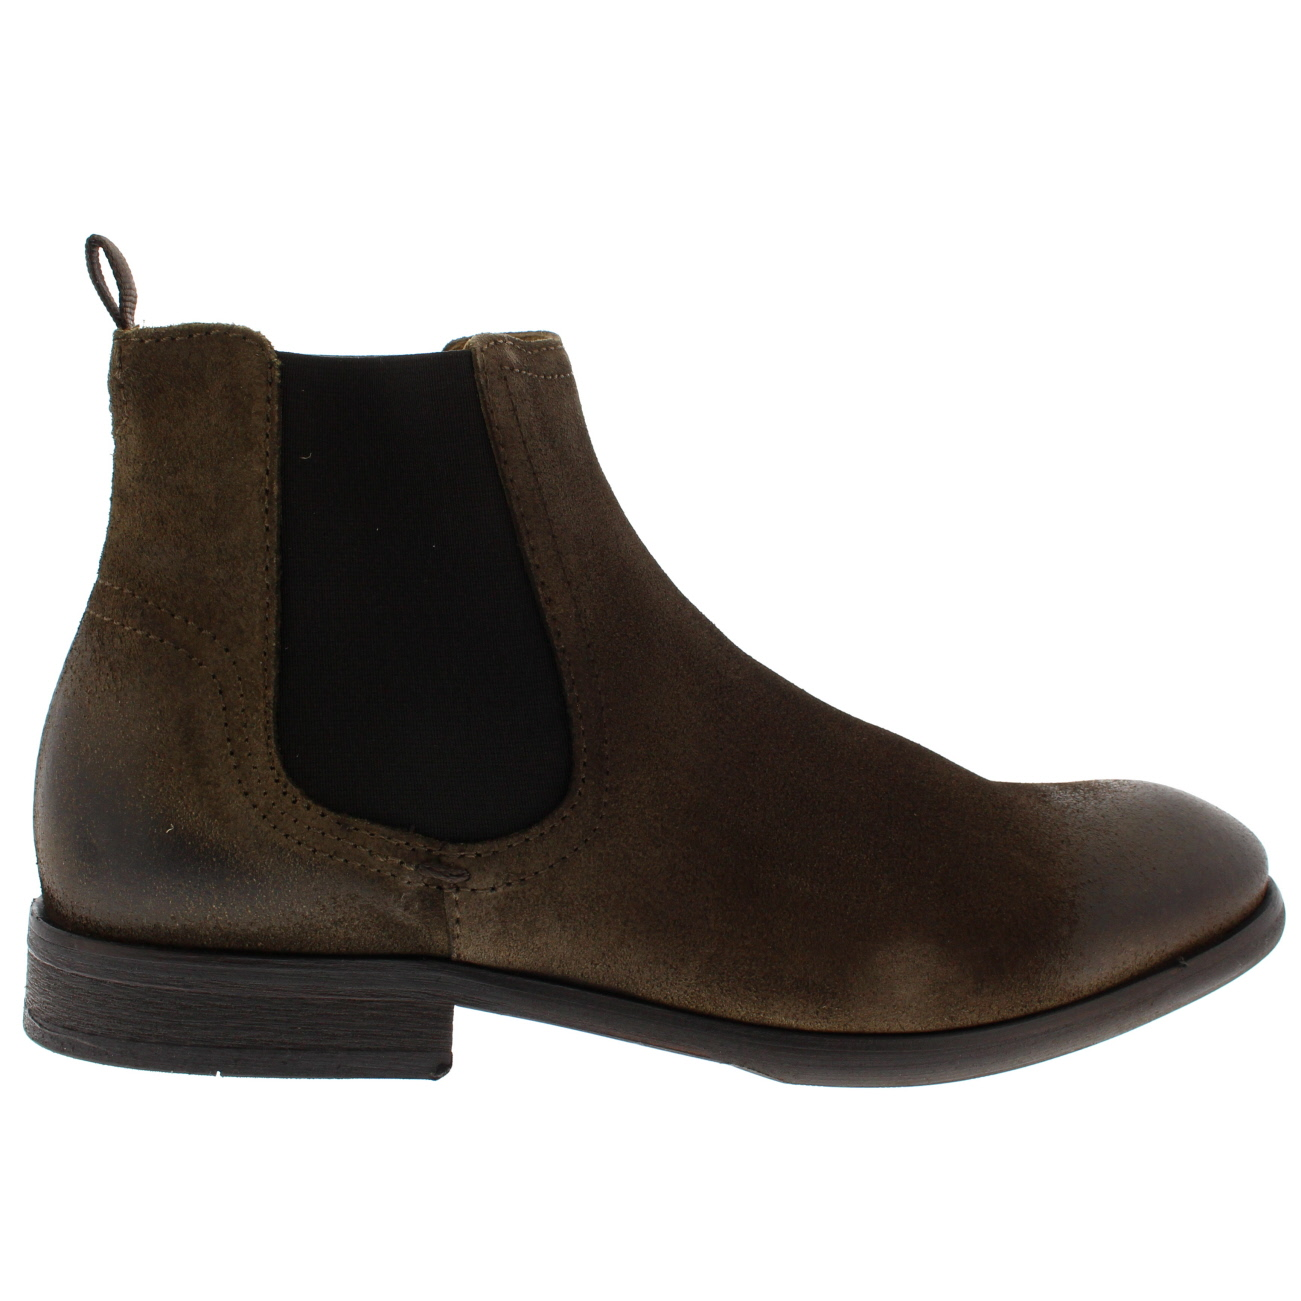 Details about Mens H By Hudson Entwhistle Calf Work Smart Office Suede Chelsea Boots US 7 13